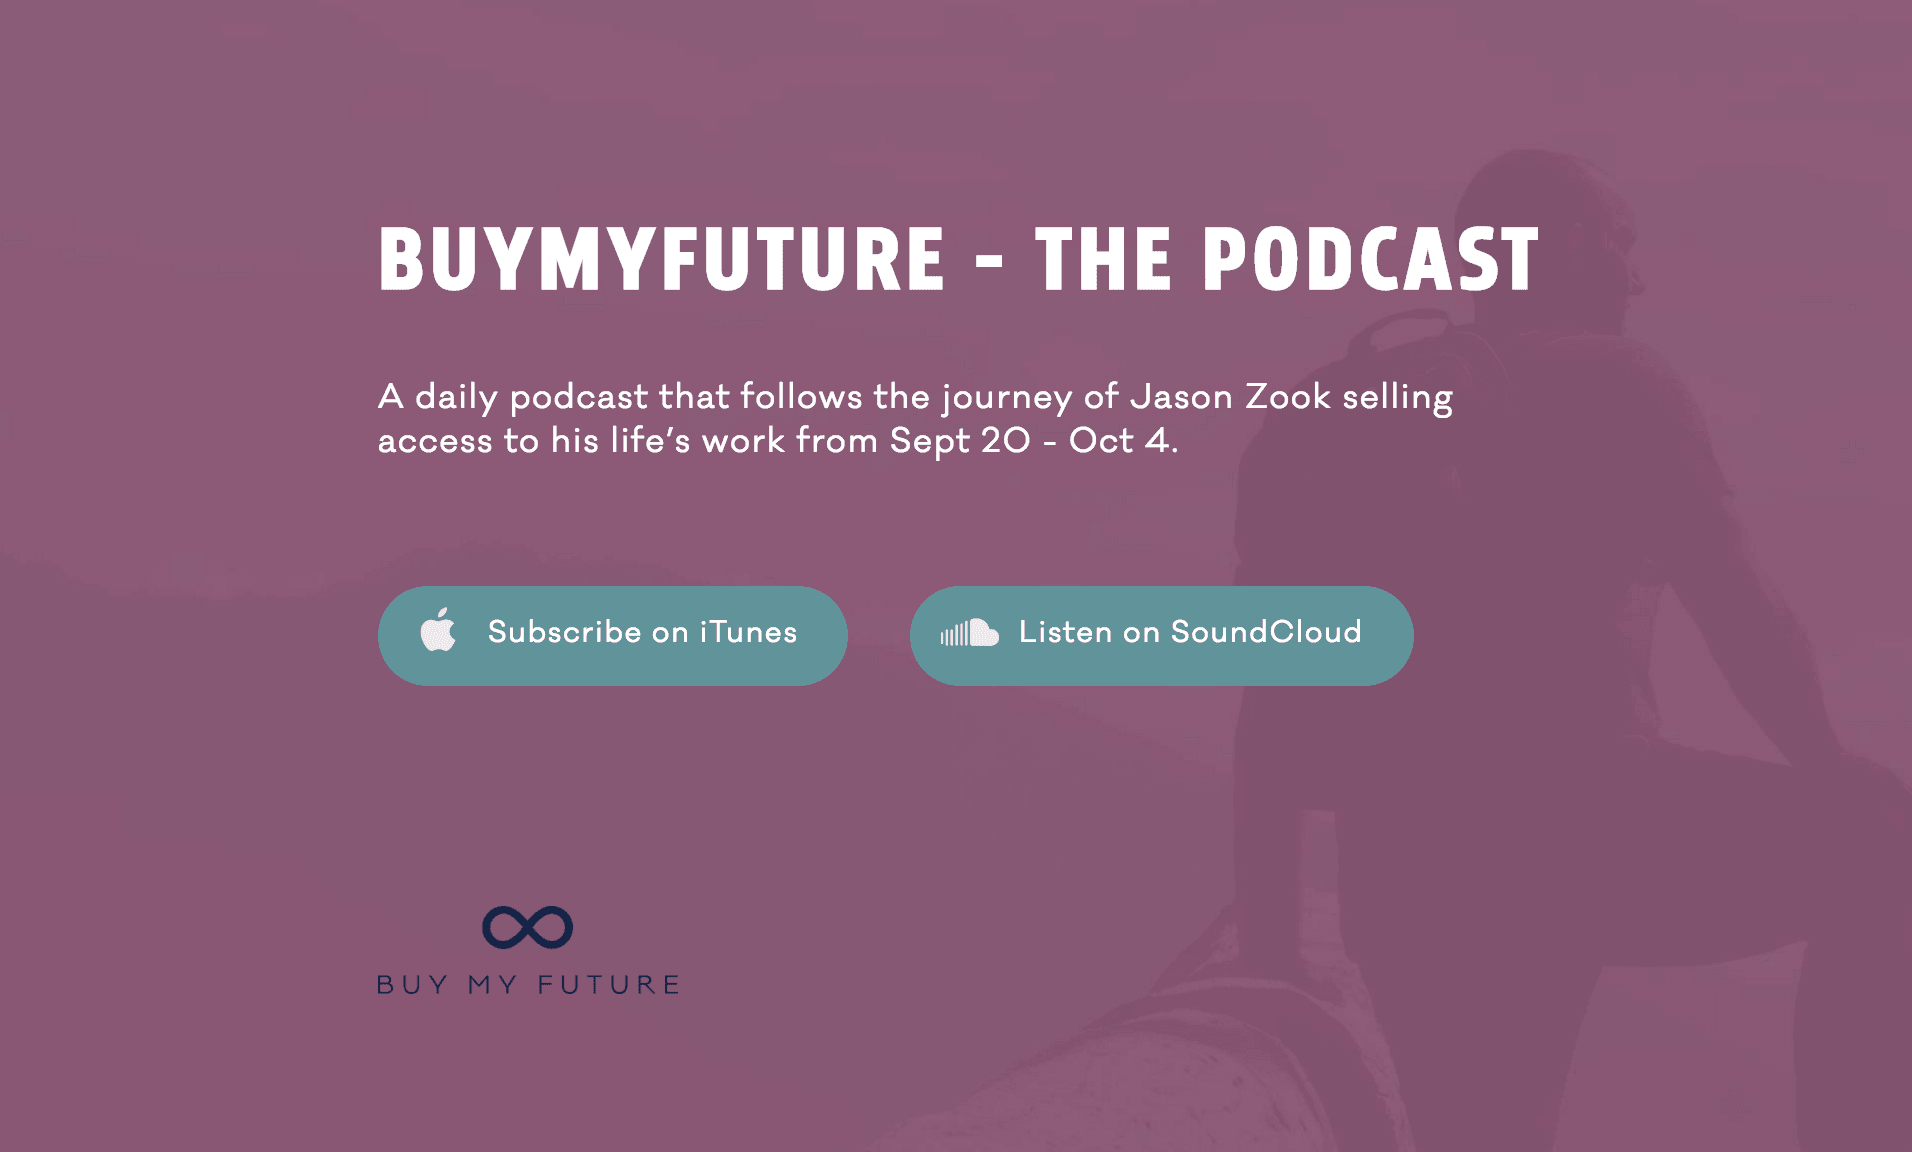 The BuyMyFuture Podcast